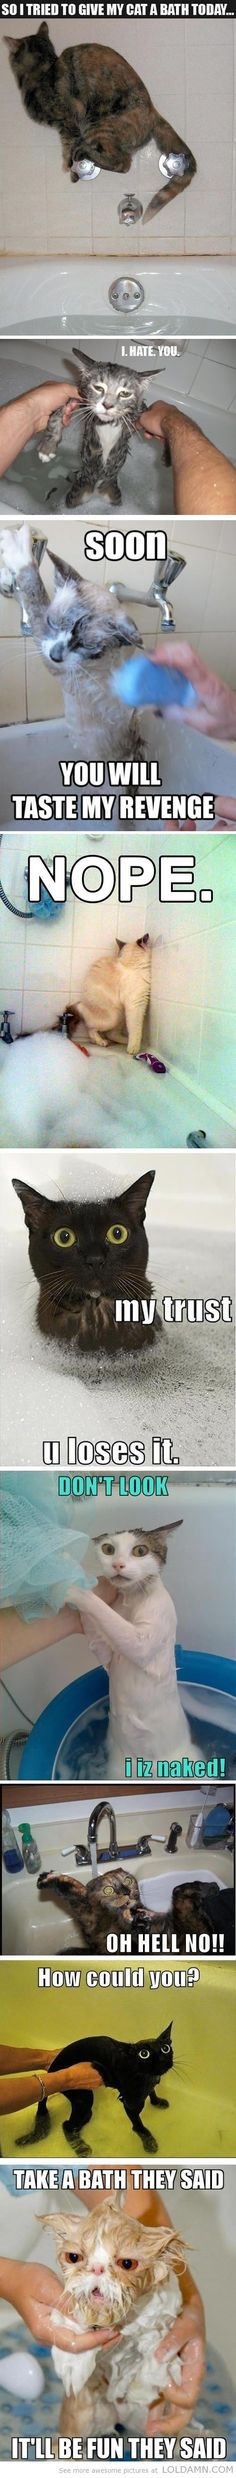 Funny cat bath pictures